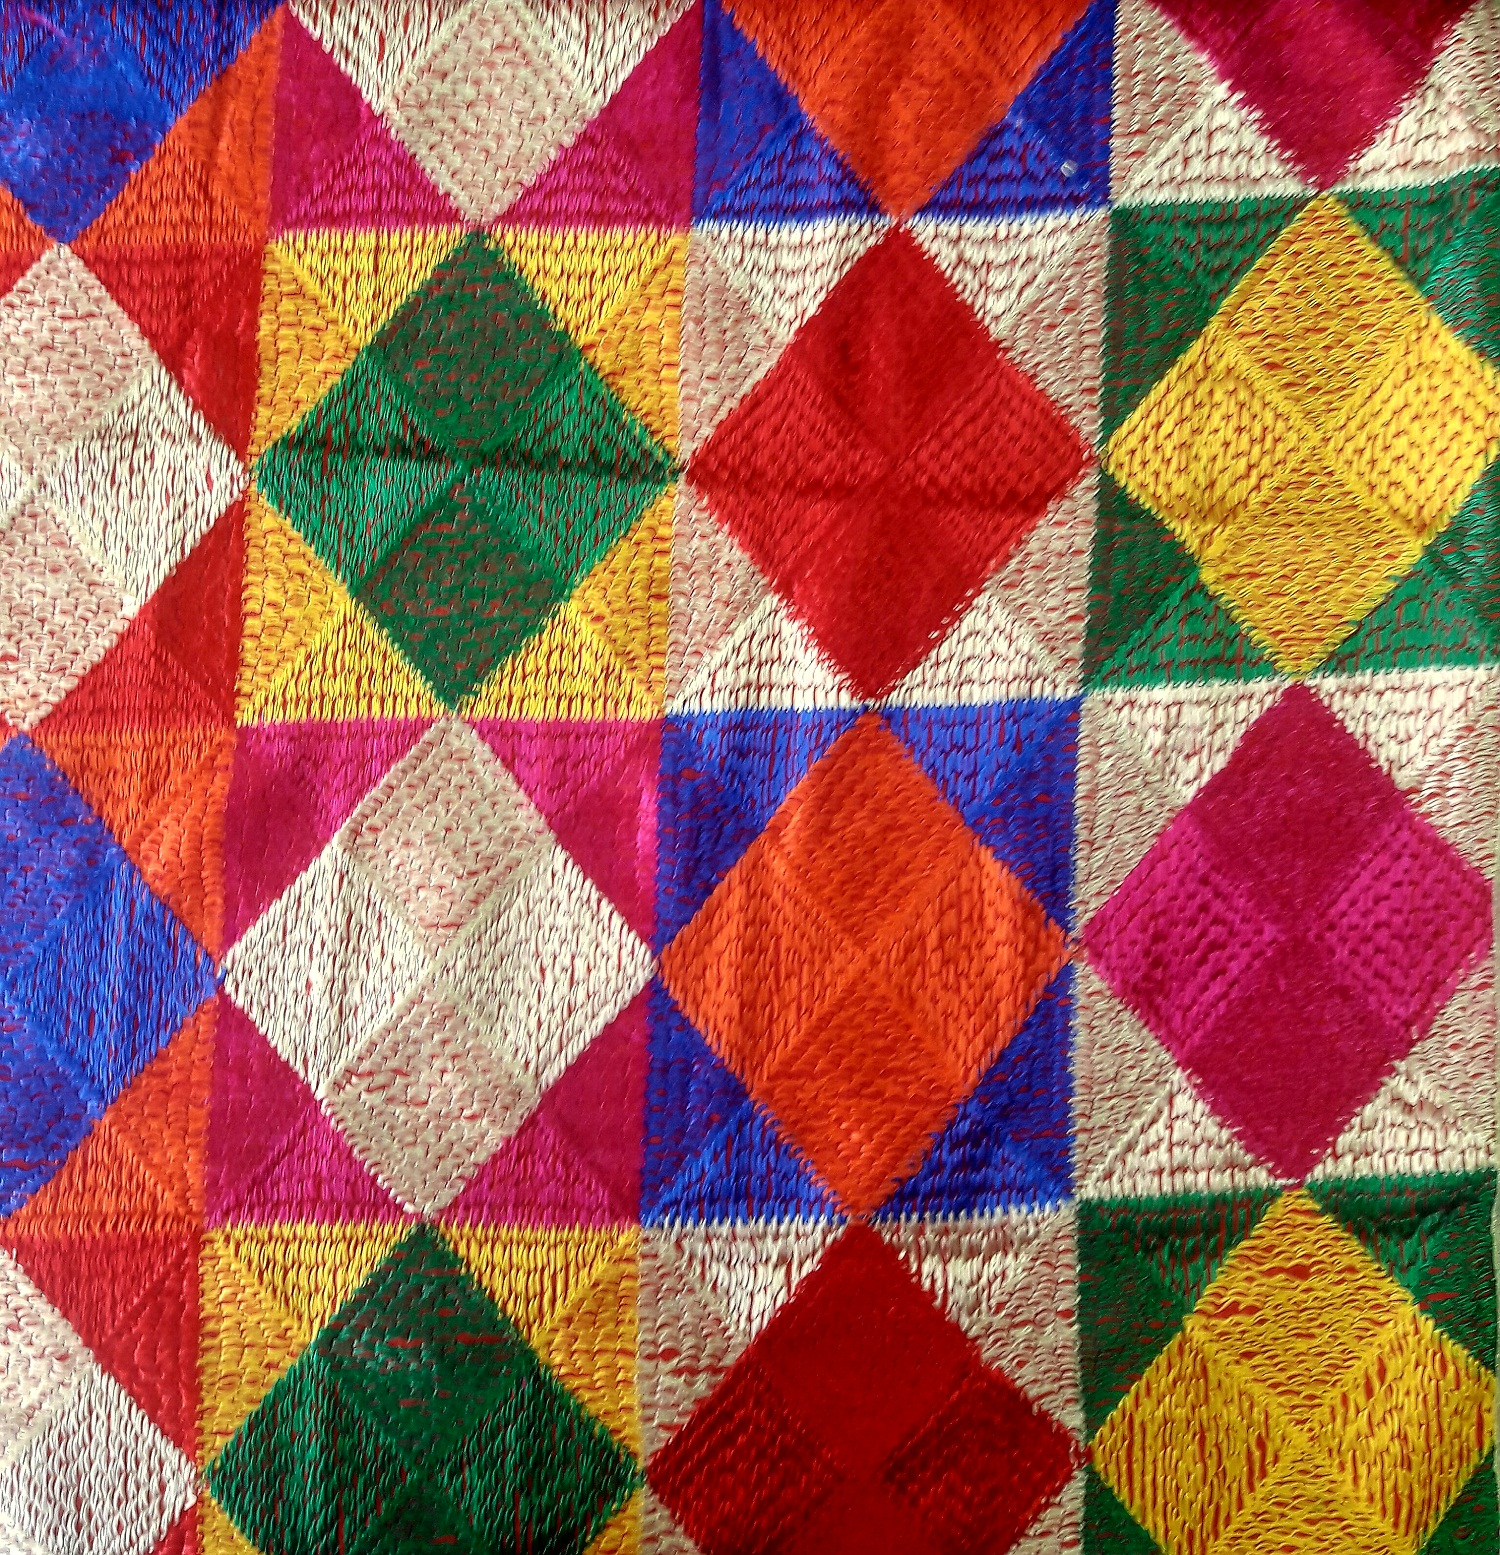 phulkari embroidery How to do phulkari embroidery bed spread, bed sheetdiwali offer.